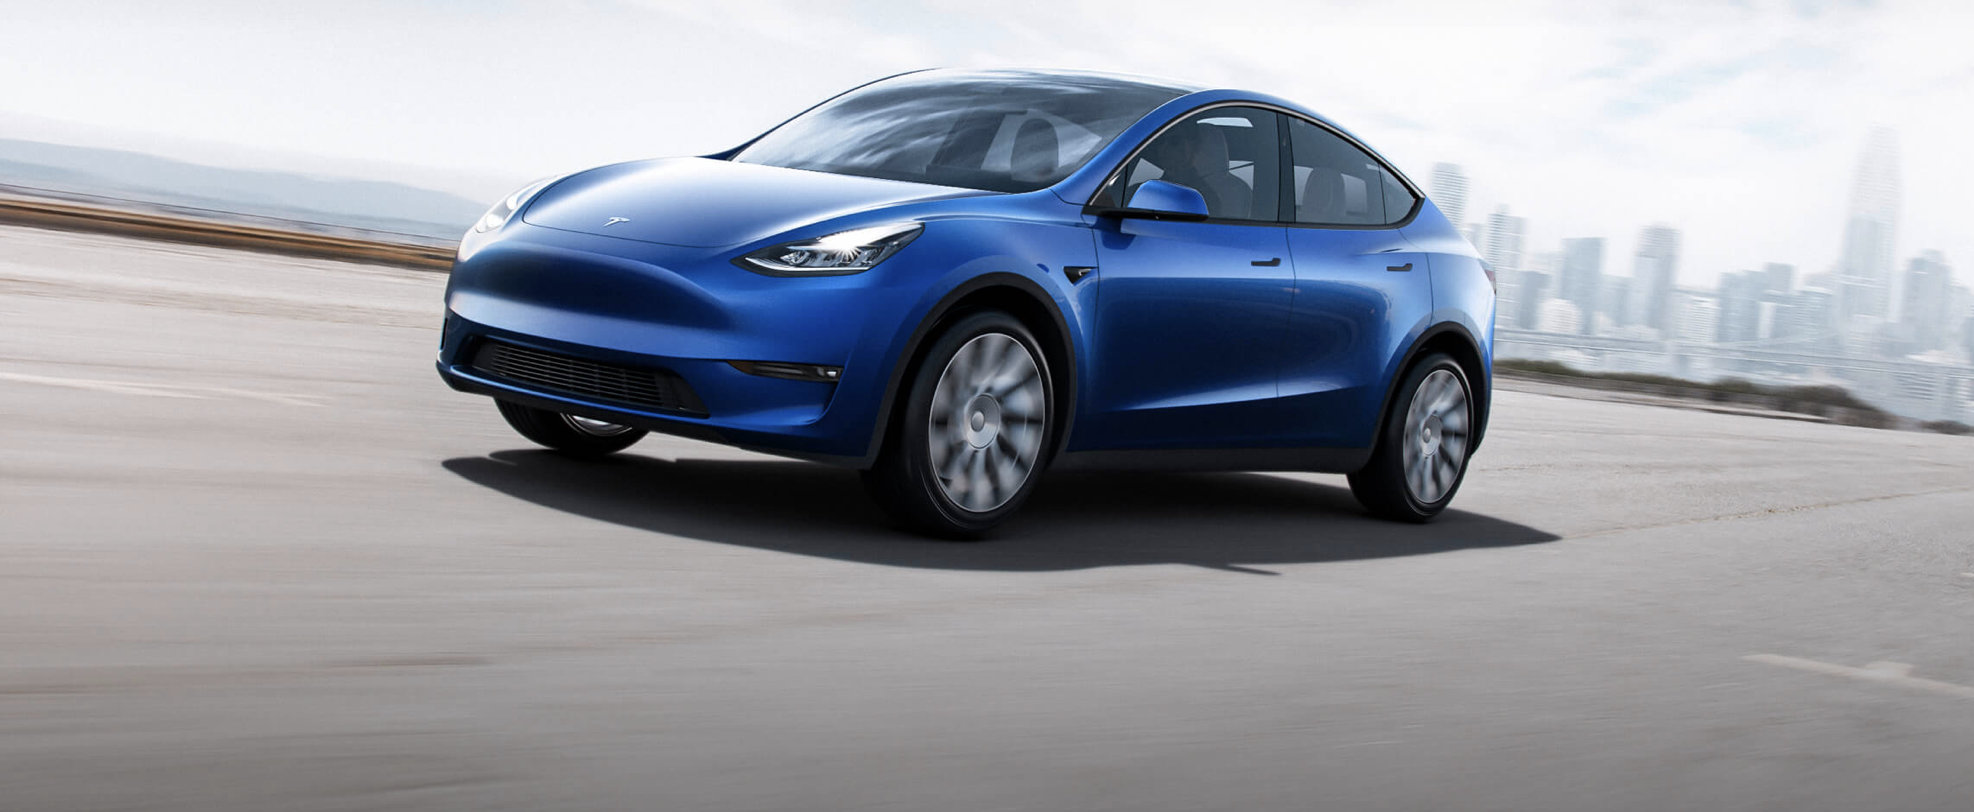 le tesla model y est officiel tout savoir sur le nouveau. Black Bedroom Furniture Sets. Home Design Ideas